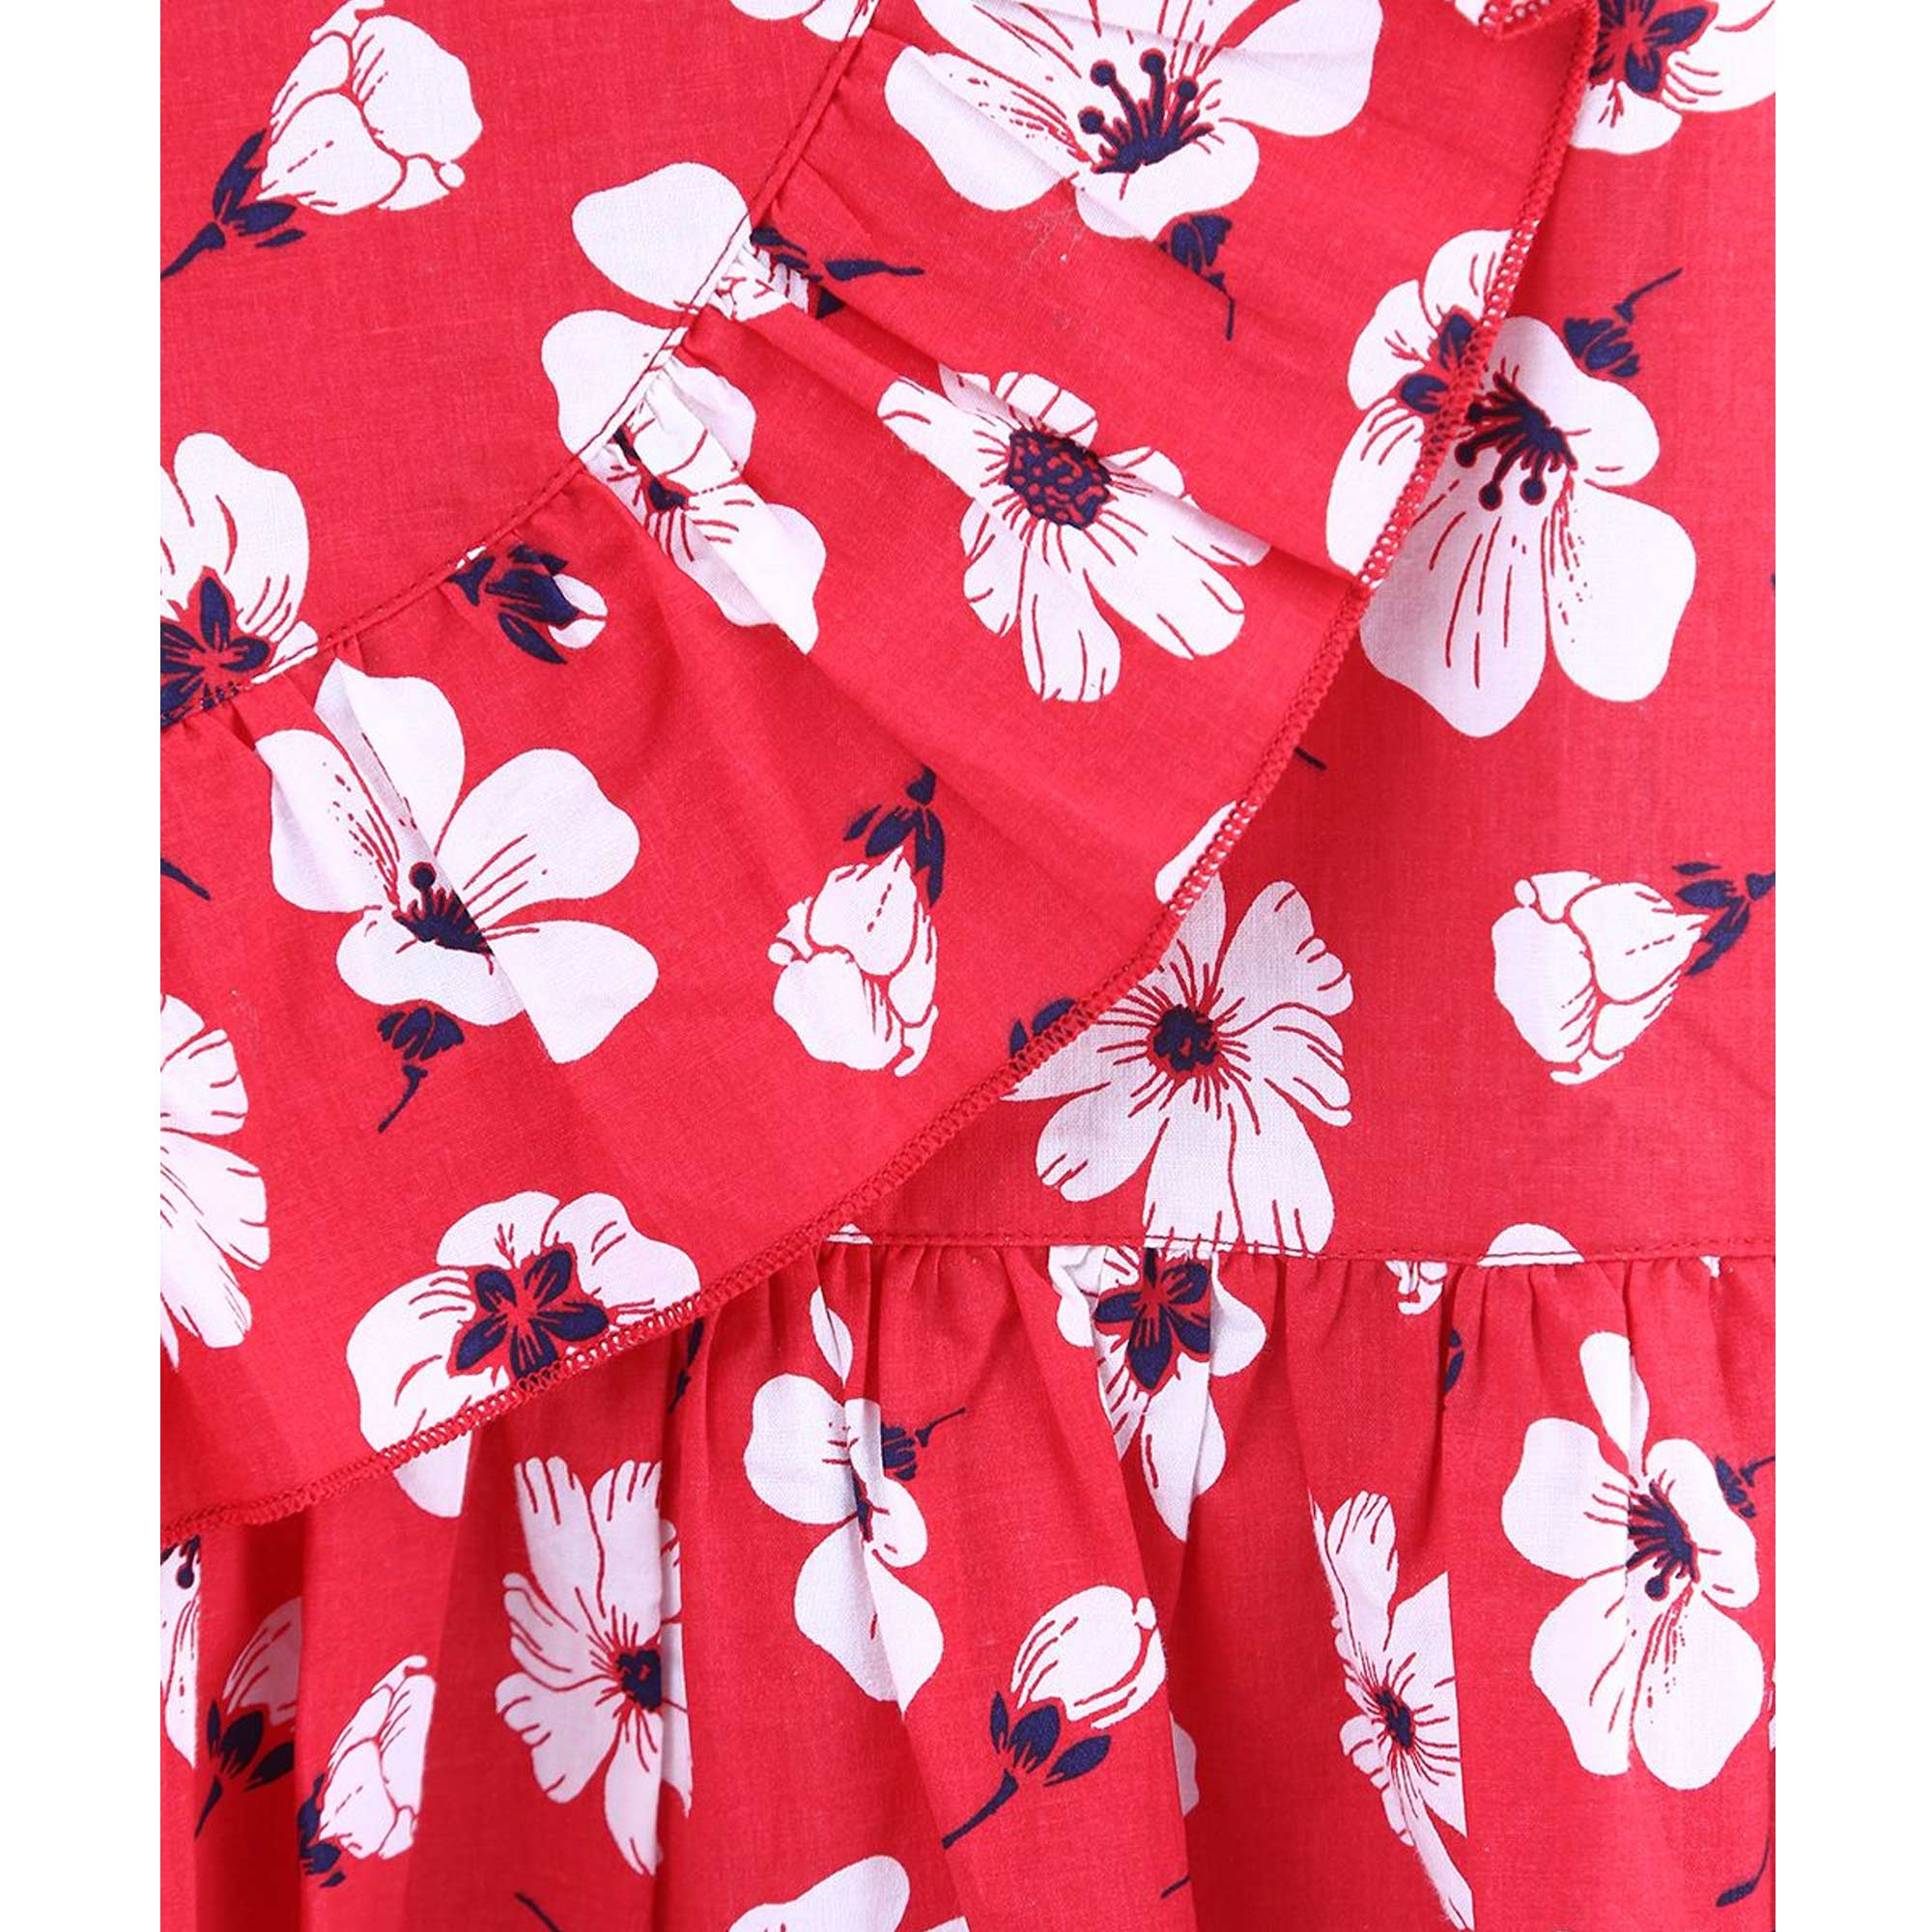 Beebay Red And White Floral Dress For Kids